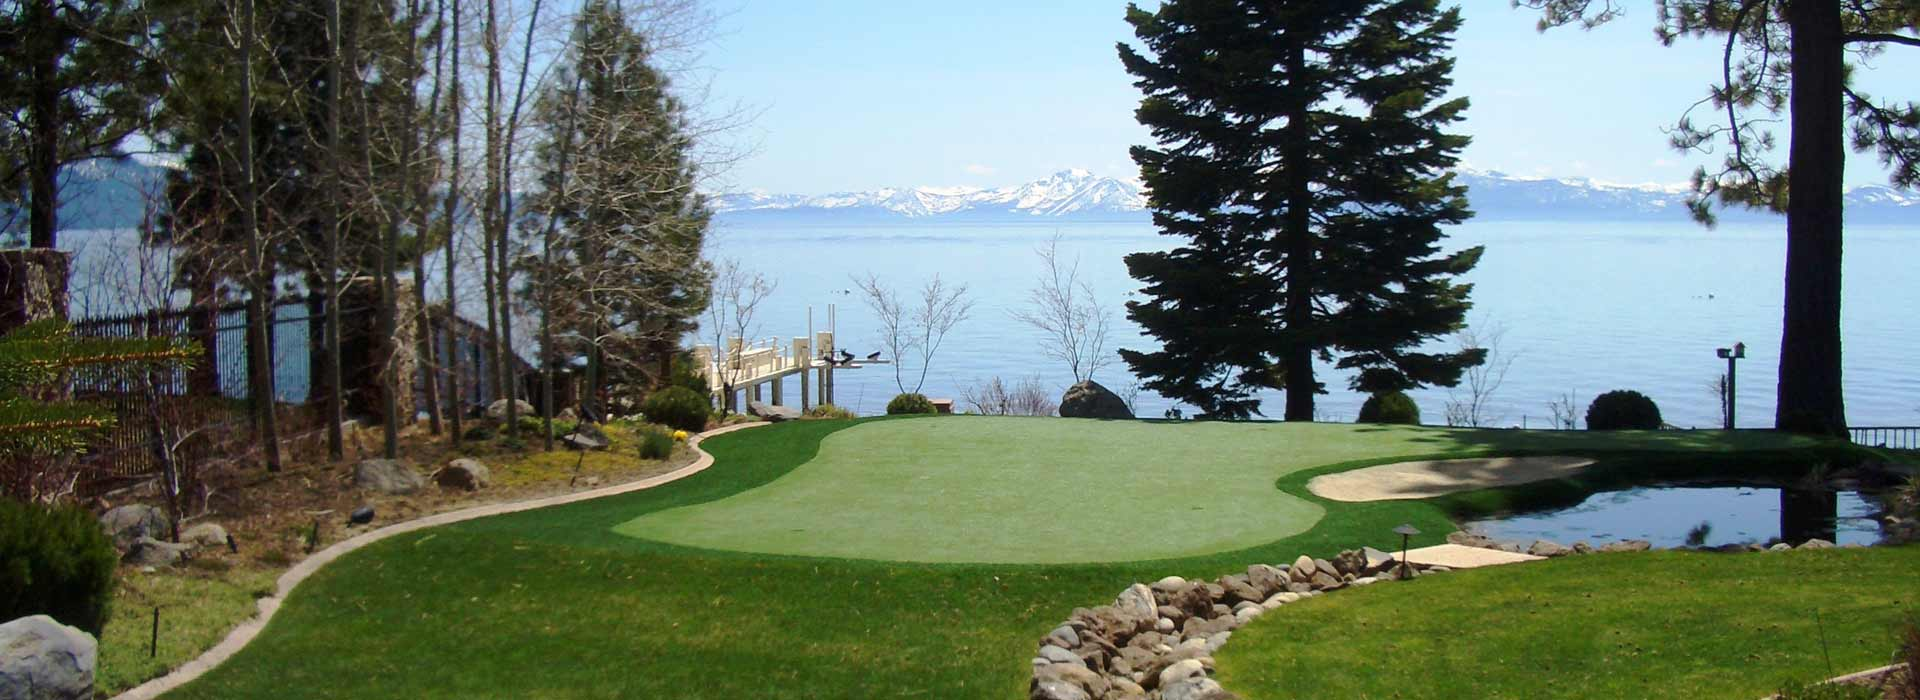 New Mexico lake property putting green